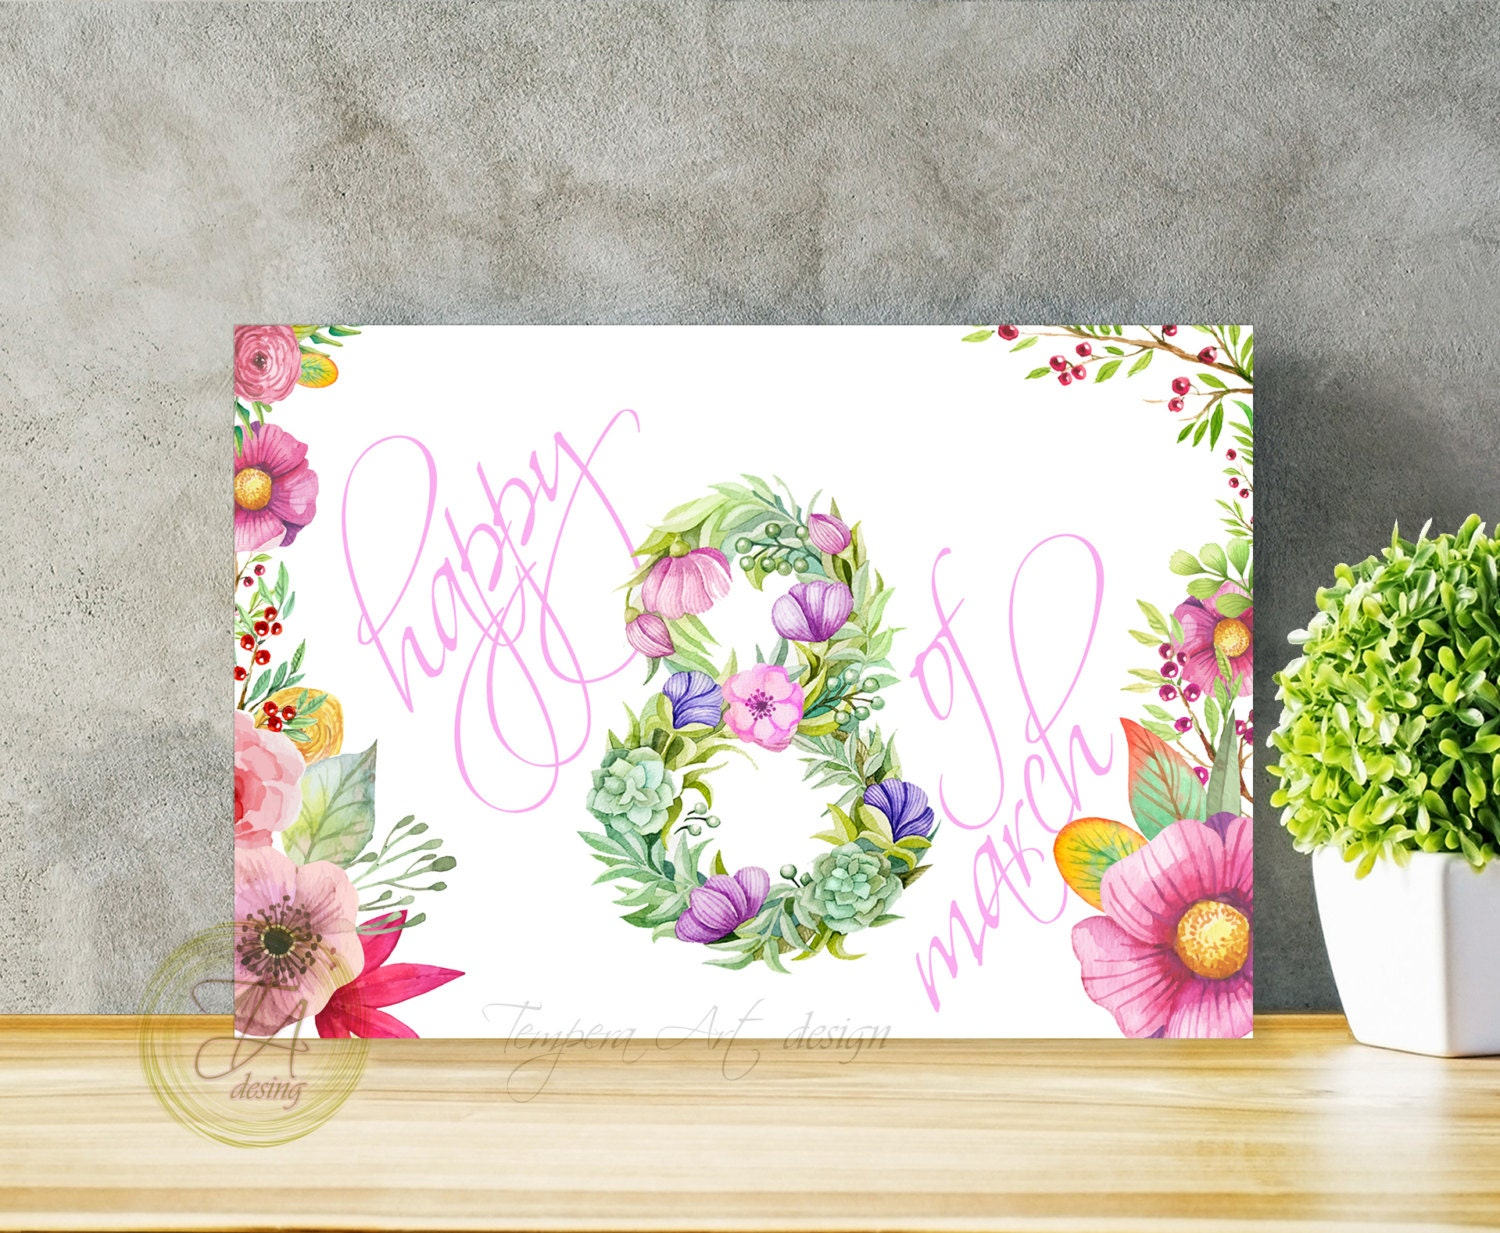 Happy 8 th of march card watercolor card flowers 8 greeting zoom kristyandbryce Images